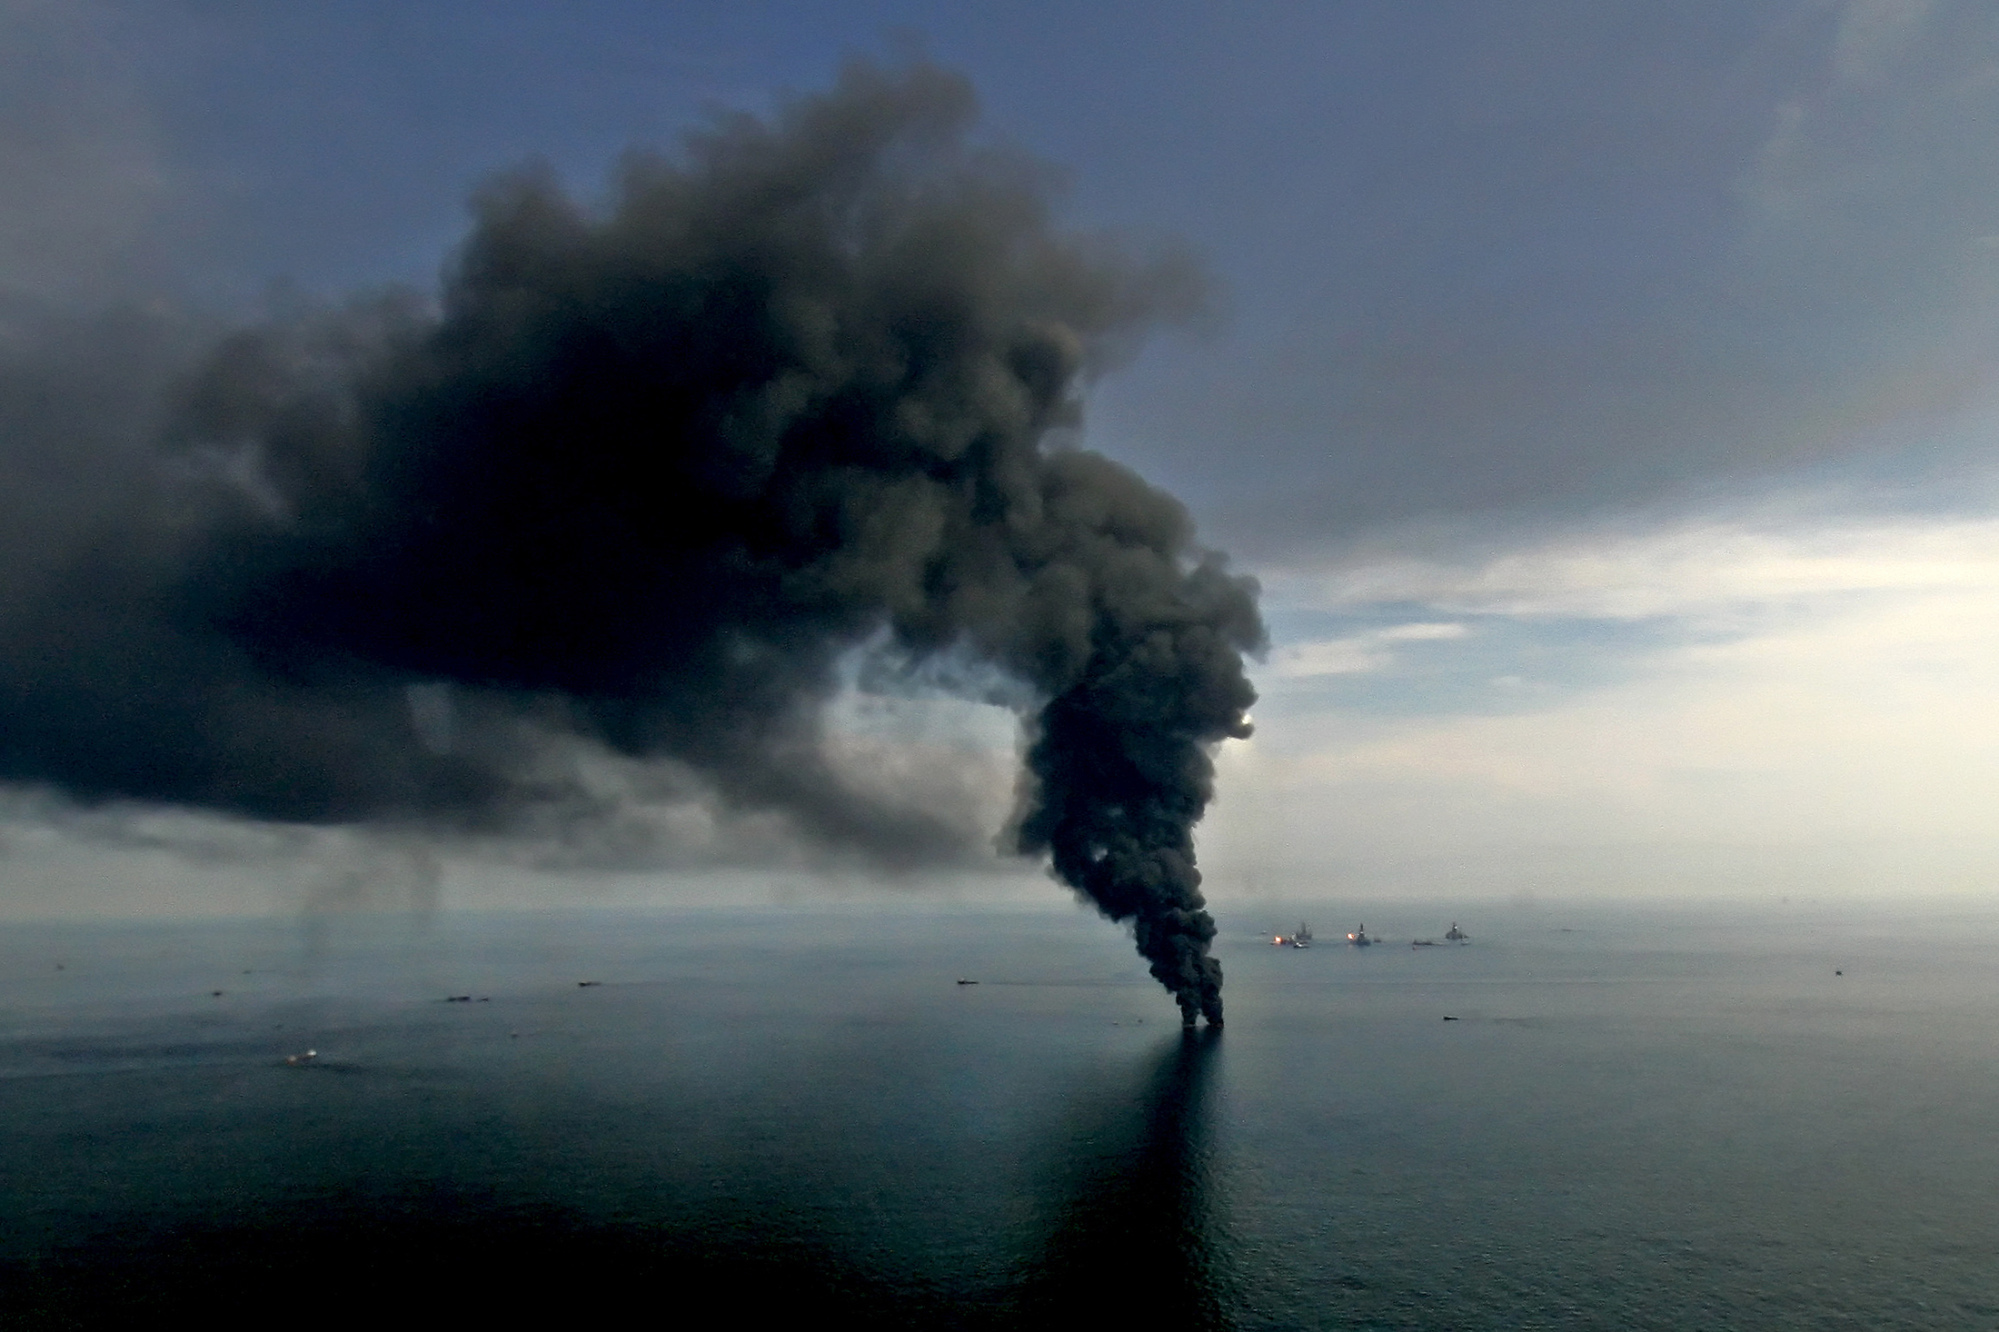 Trump rolls back offshore safety rules brought in after BP oil spill